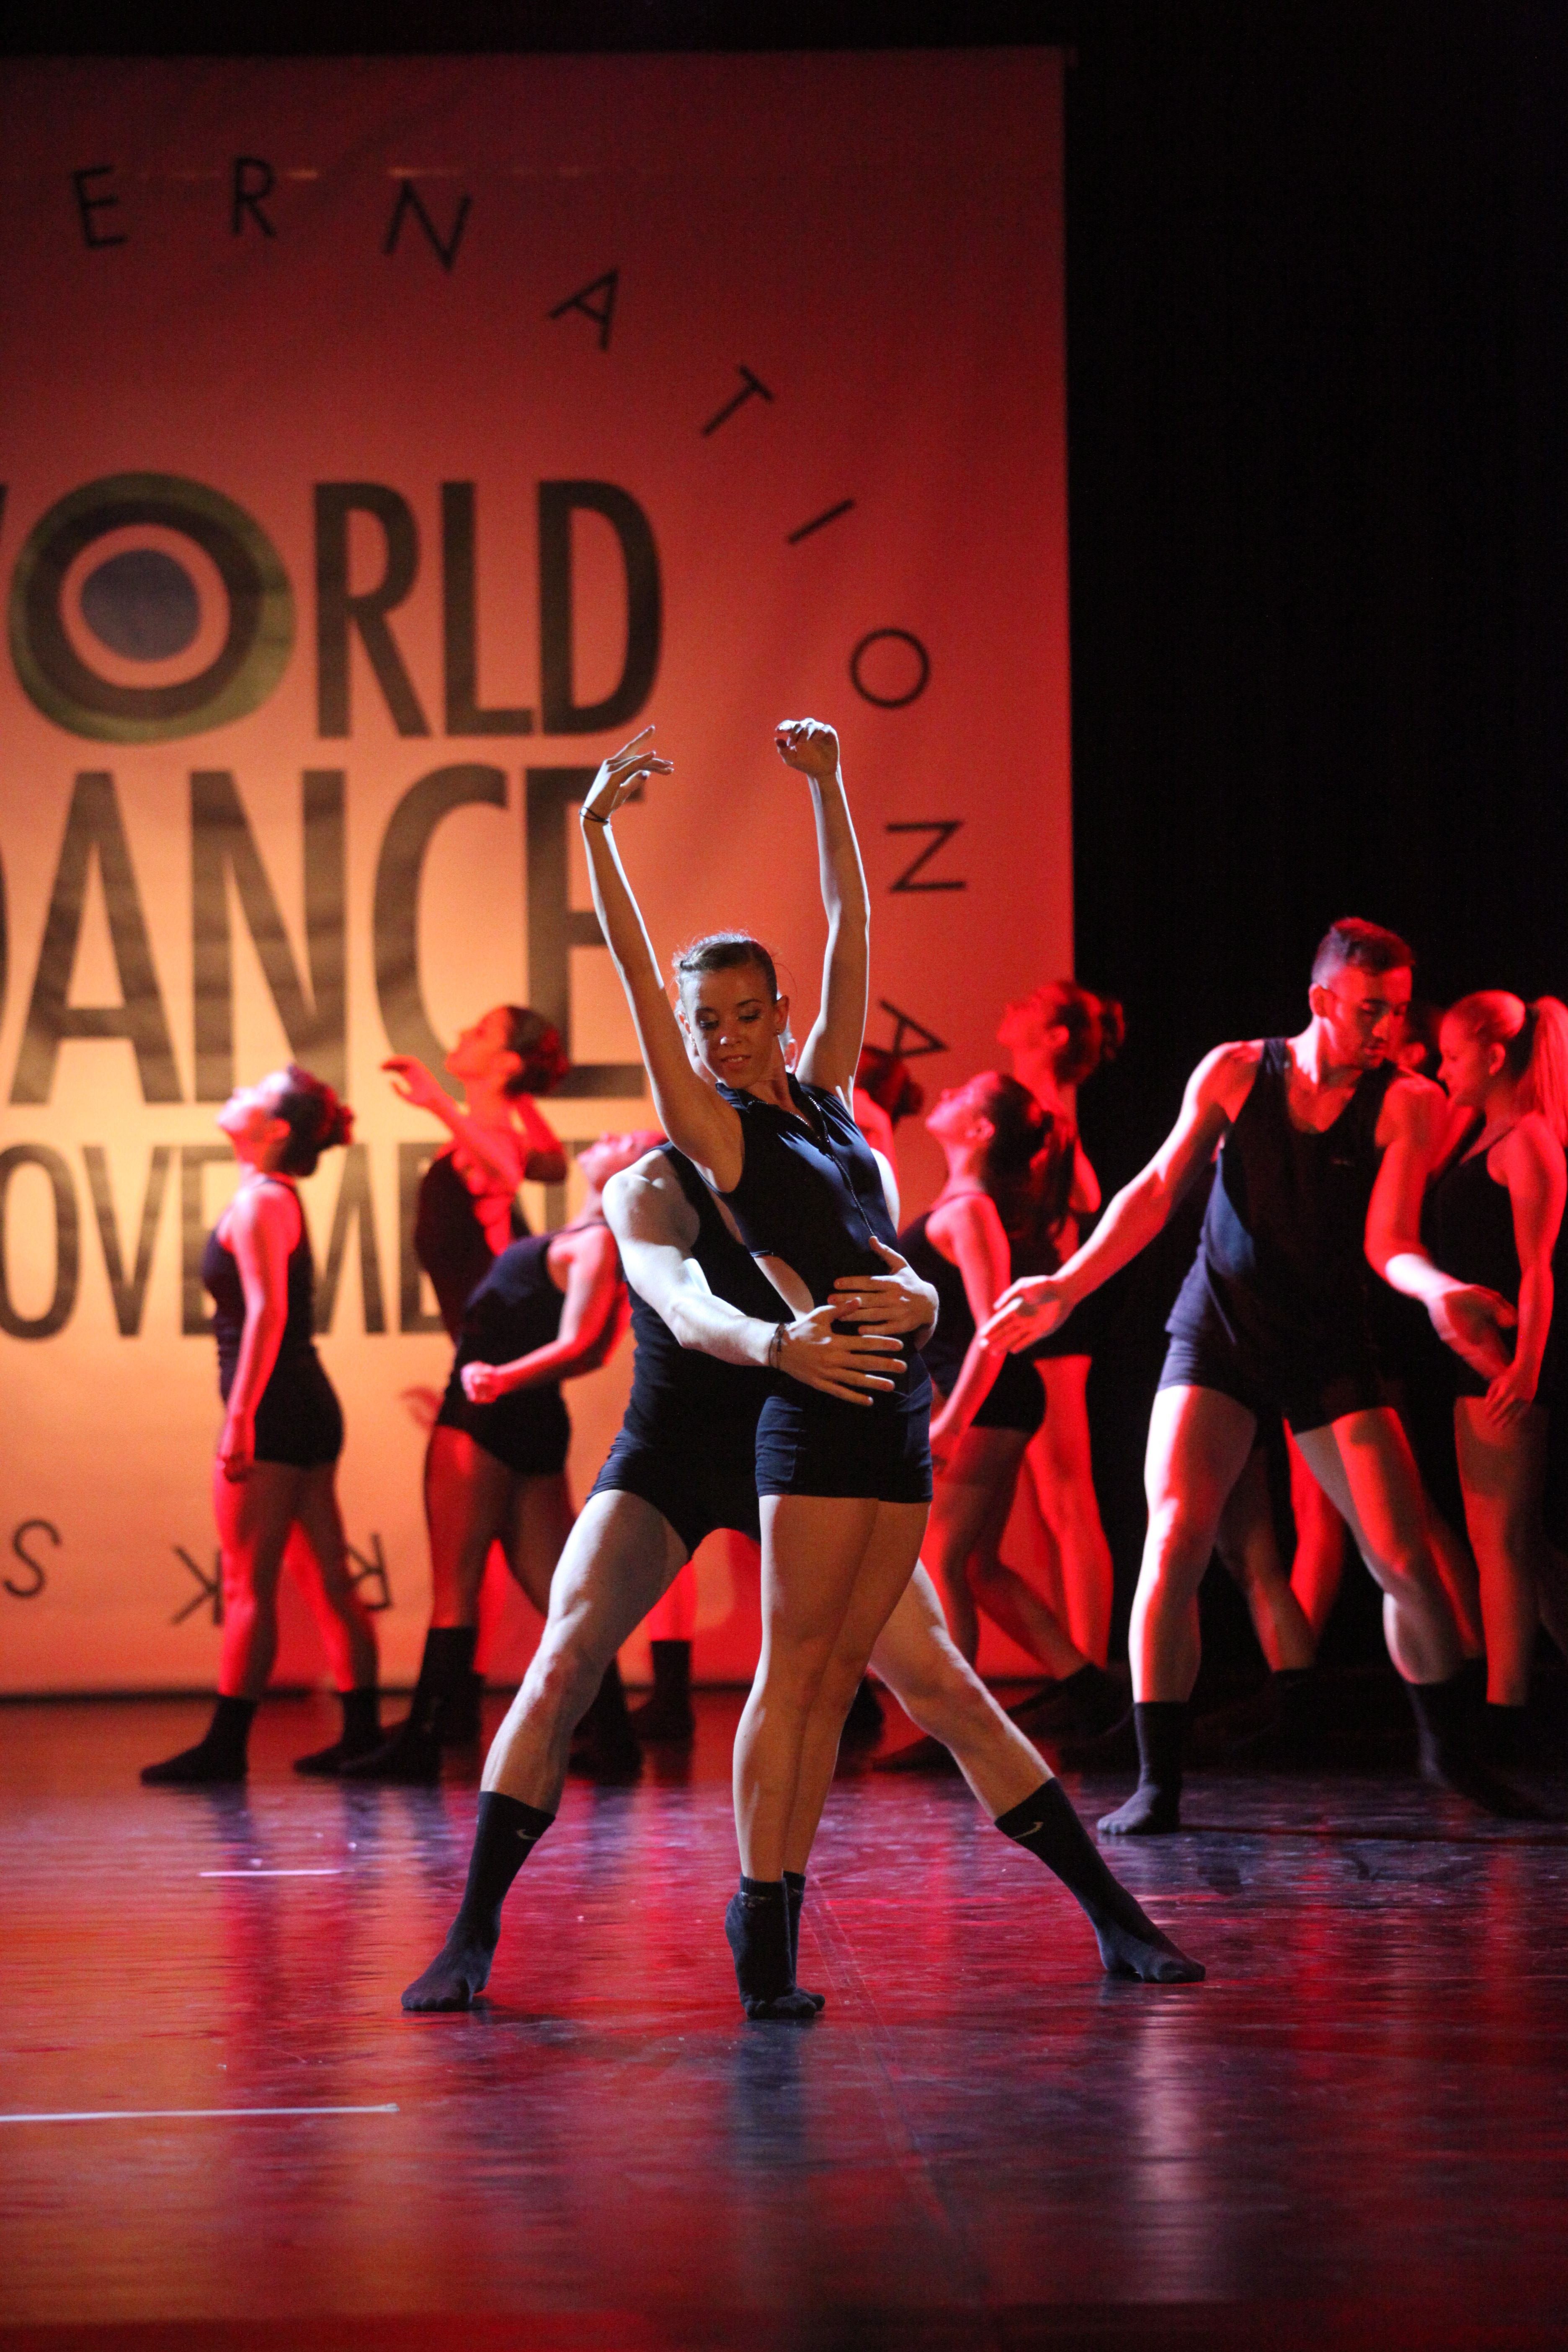 Pin on Dance: Performance and Movement